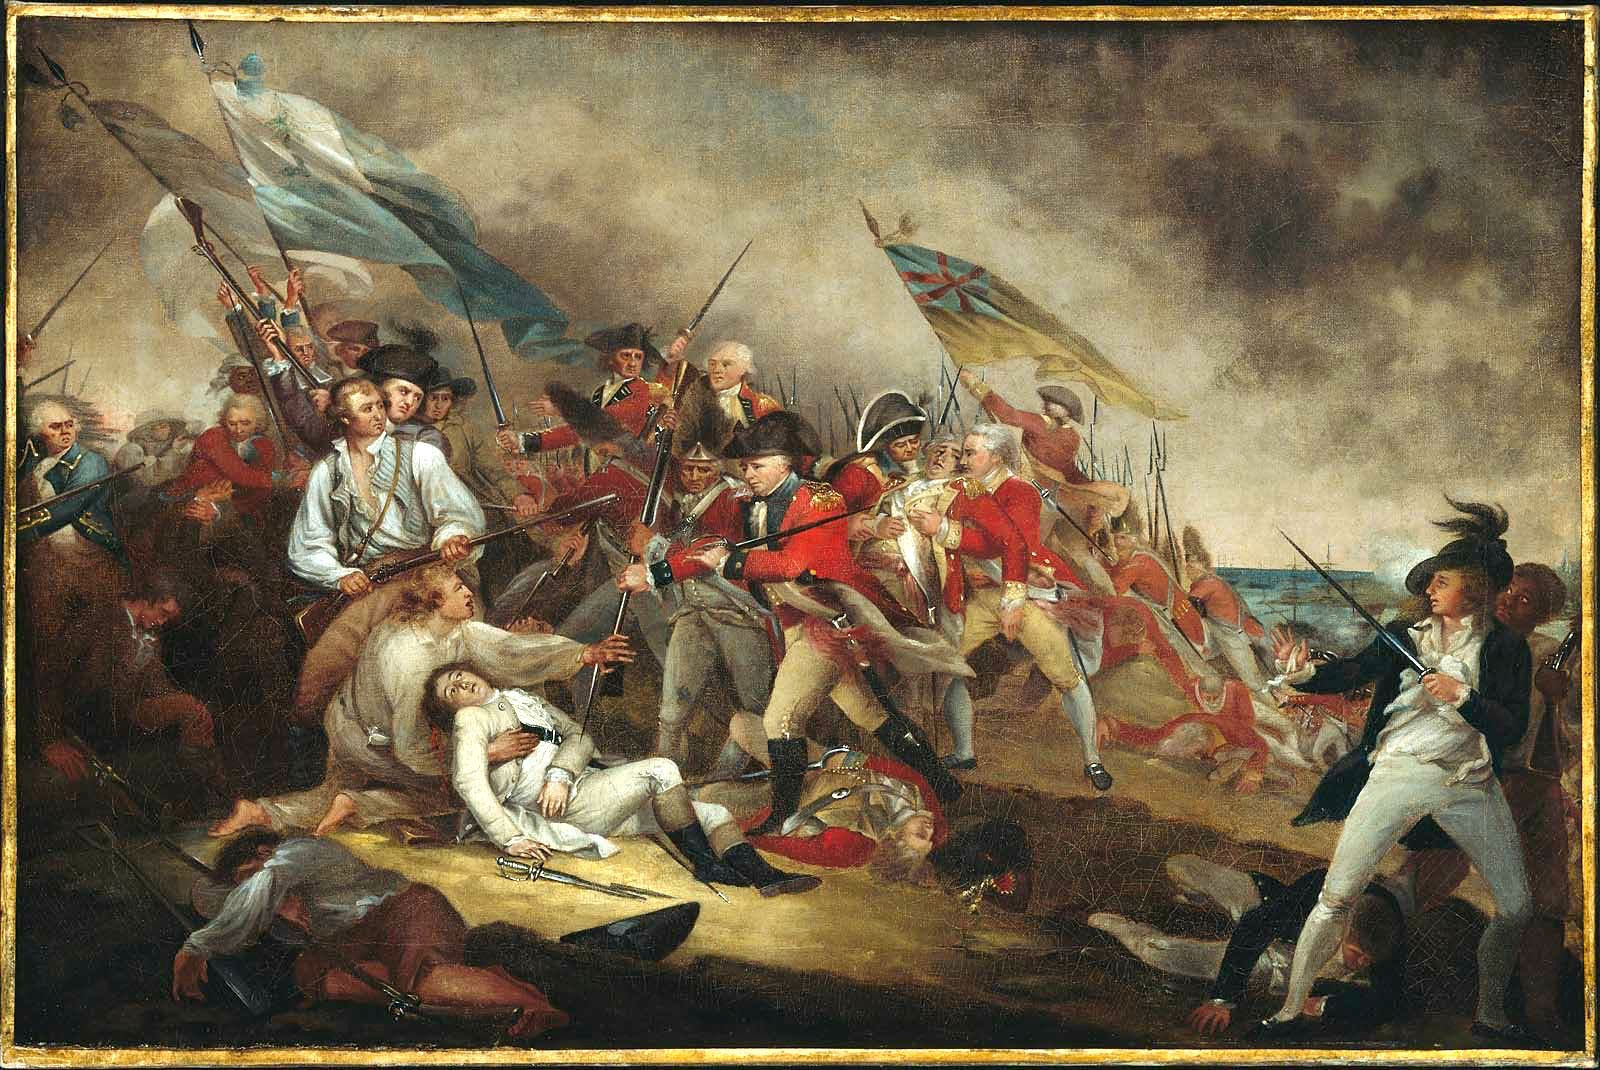 The Death of General Warren at the Battle of Bunker Hill by John Trumbull. [2]